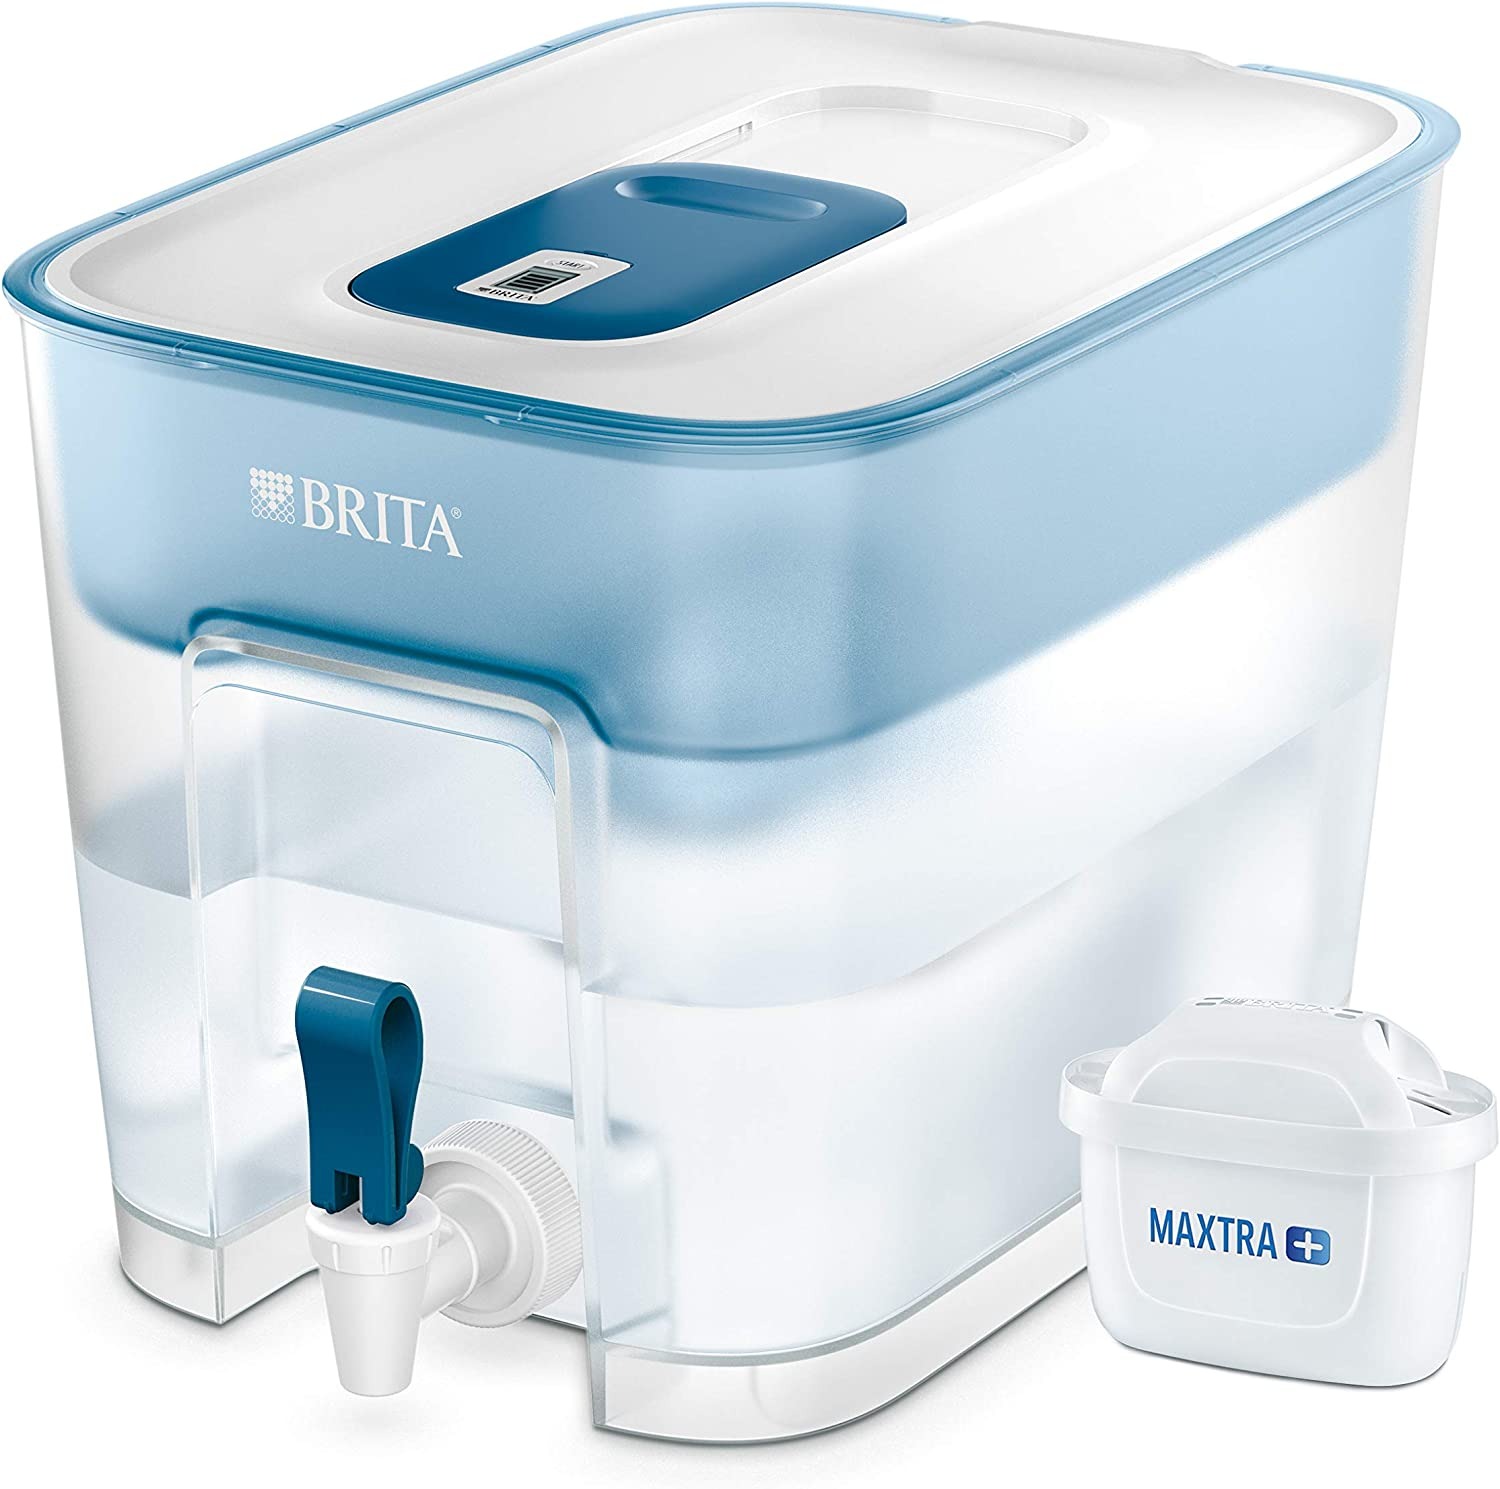 BRITA Flow Water XL Filter Tank, Compatible with BRITA MAXTRA+ Cartridges, Water Filter That Helps with The Reduction of Limescale and Chlorine, White